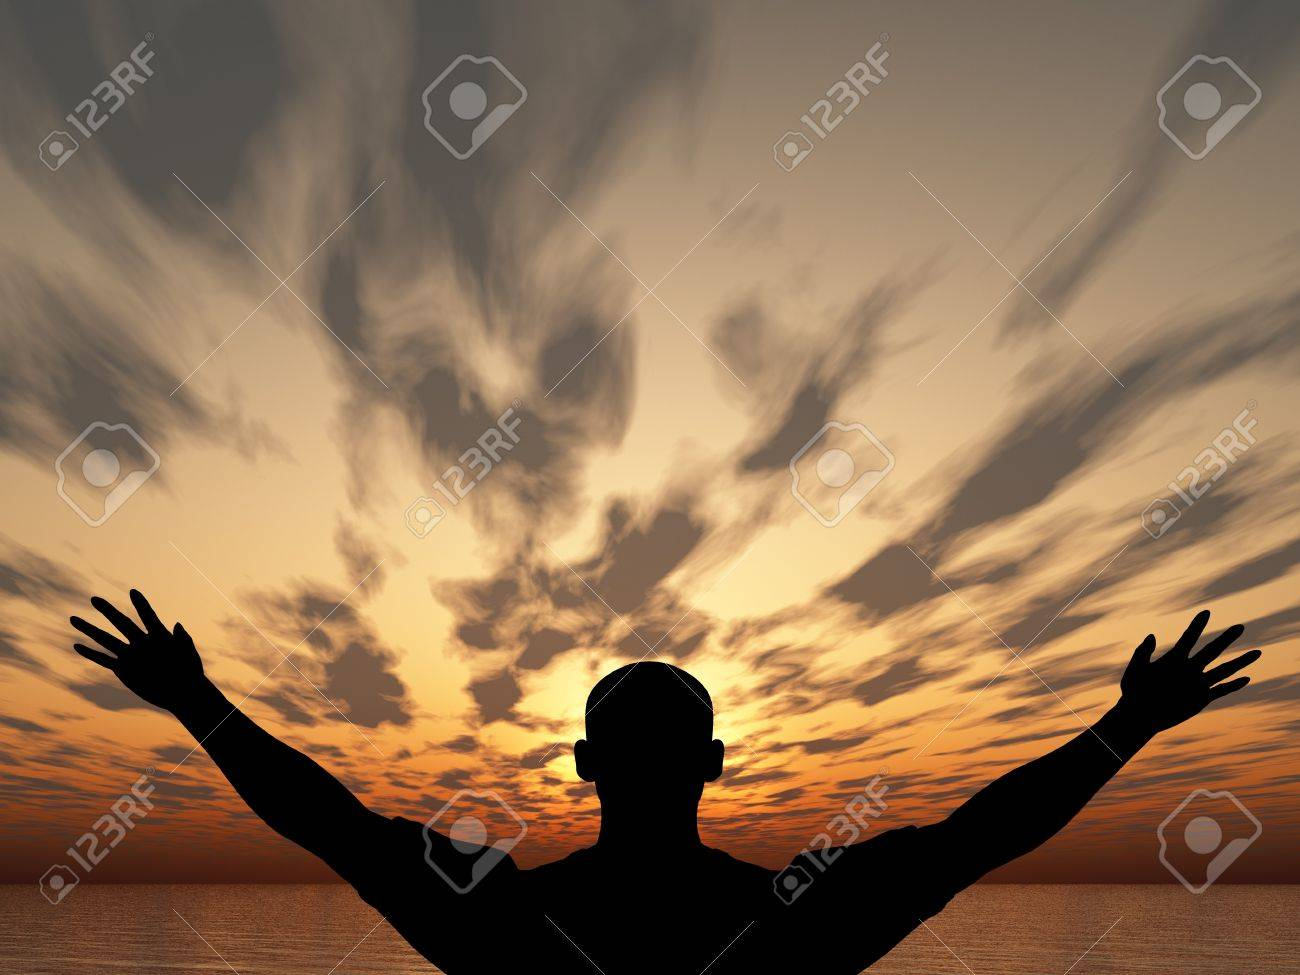 Meeting of the sun. The man on with the hands lifted above, on a background of a sunset Stock Photo - 7238477